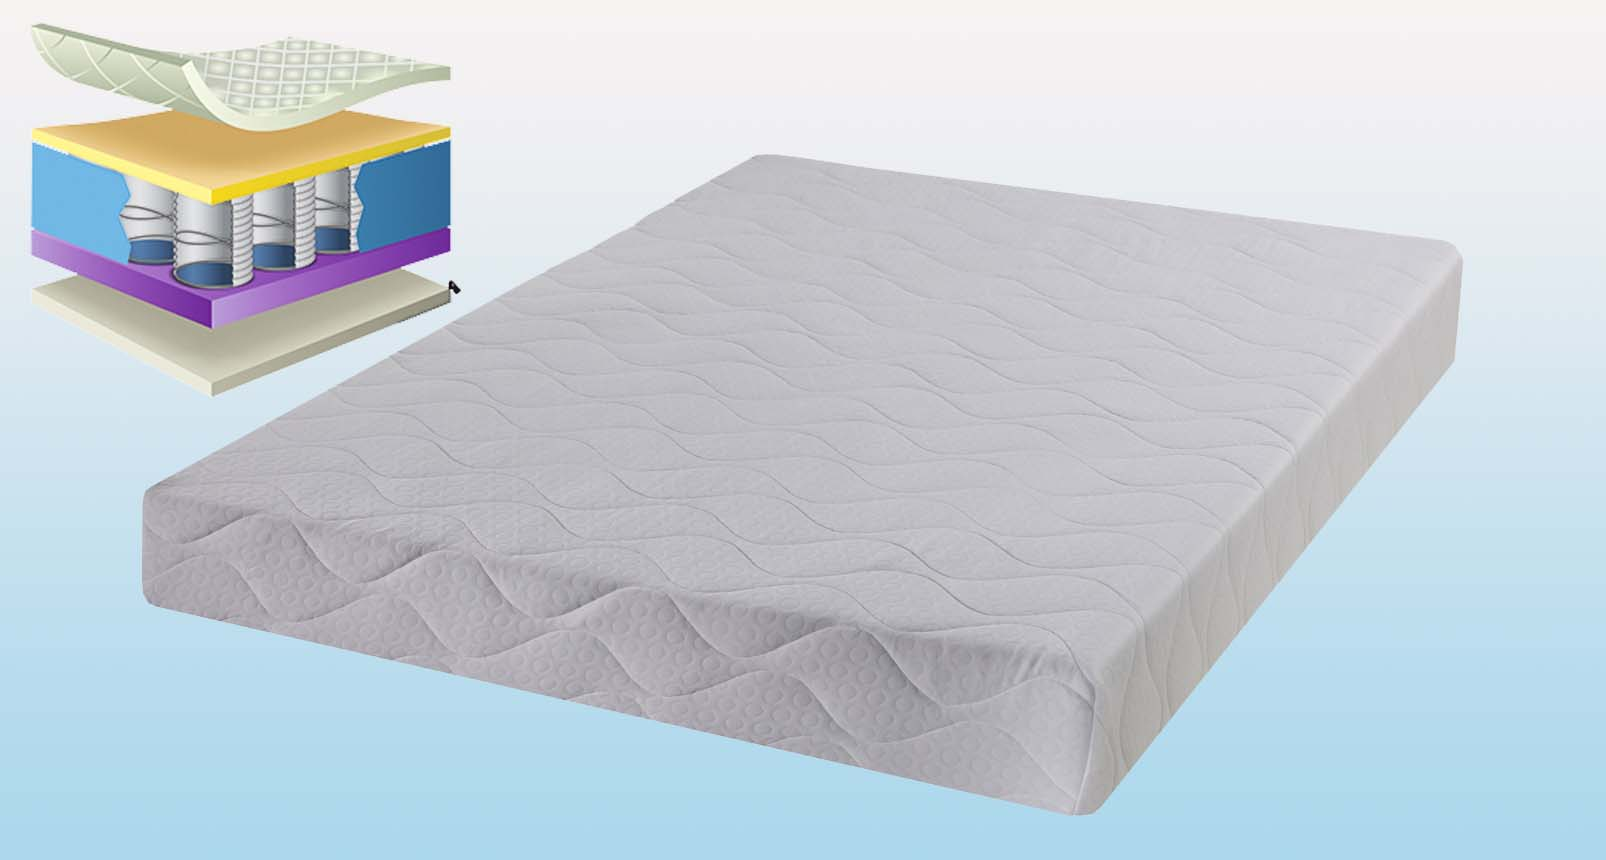 The WBK Mattress Range